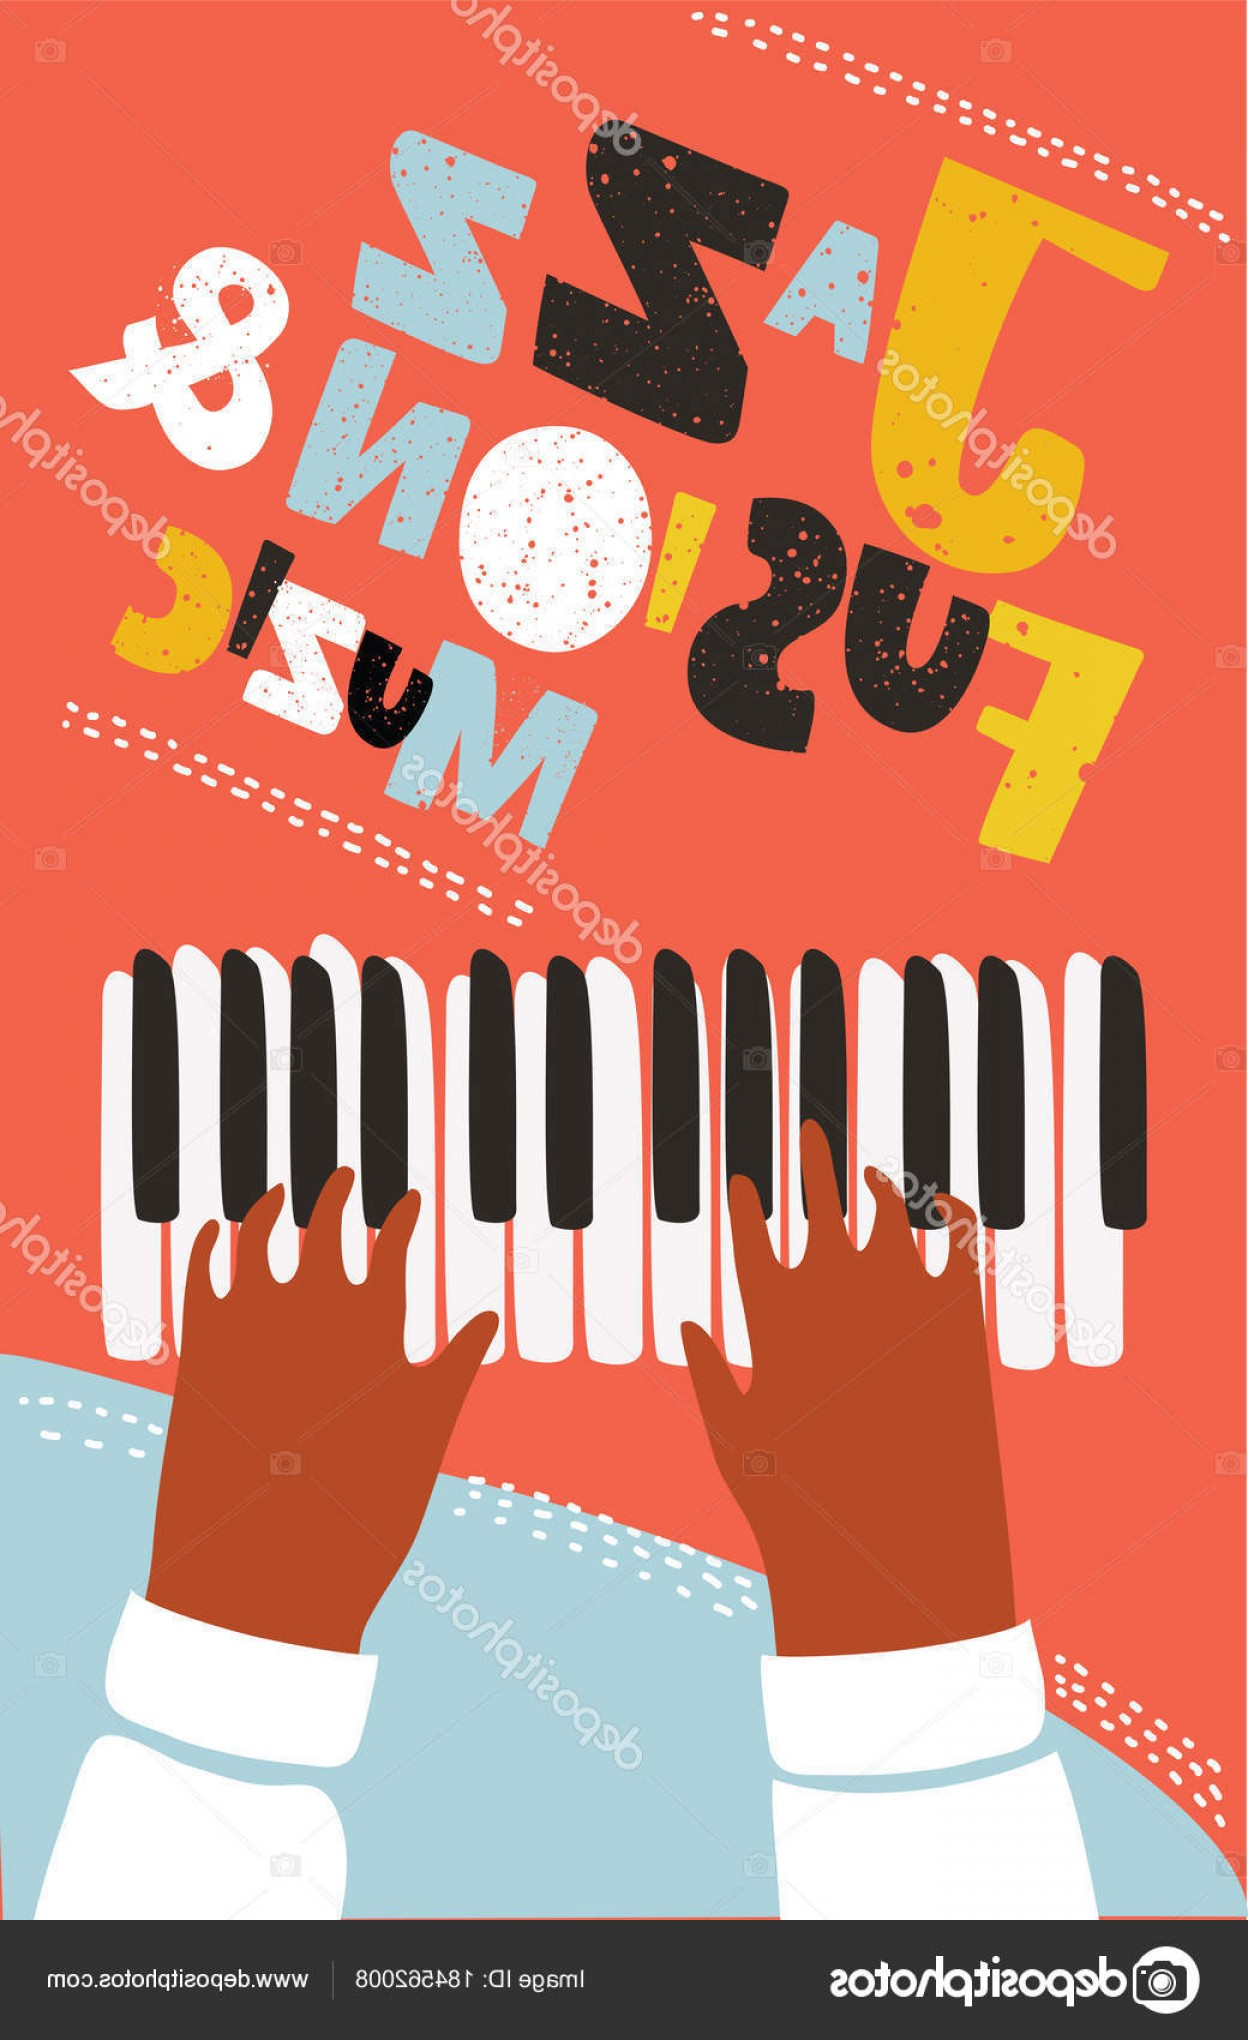 Musical Keyboard Vector: Stock Illustration Concept Modern Music Poster Vector